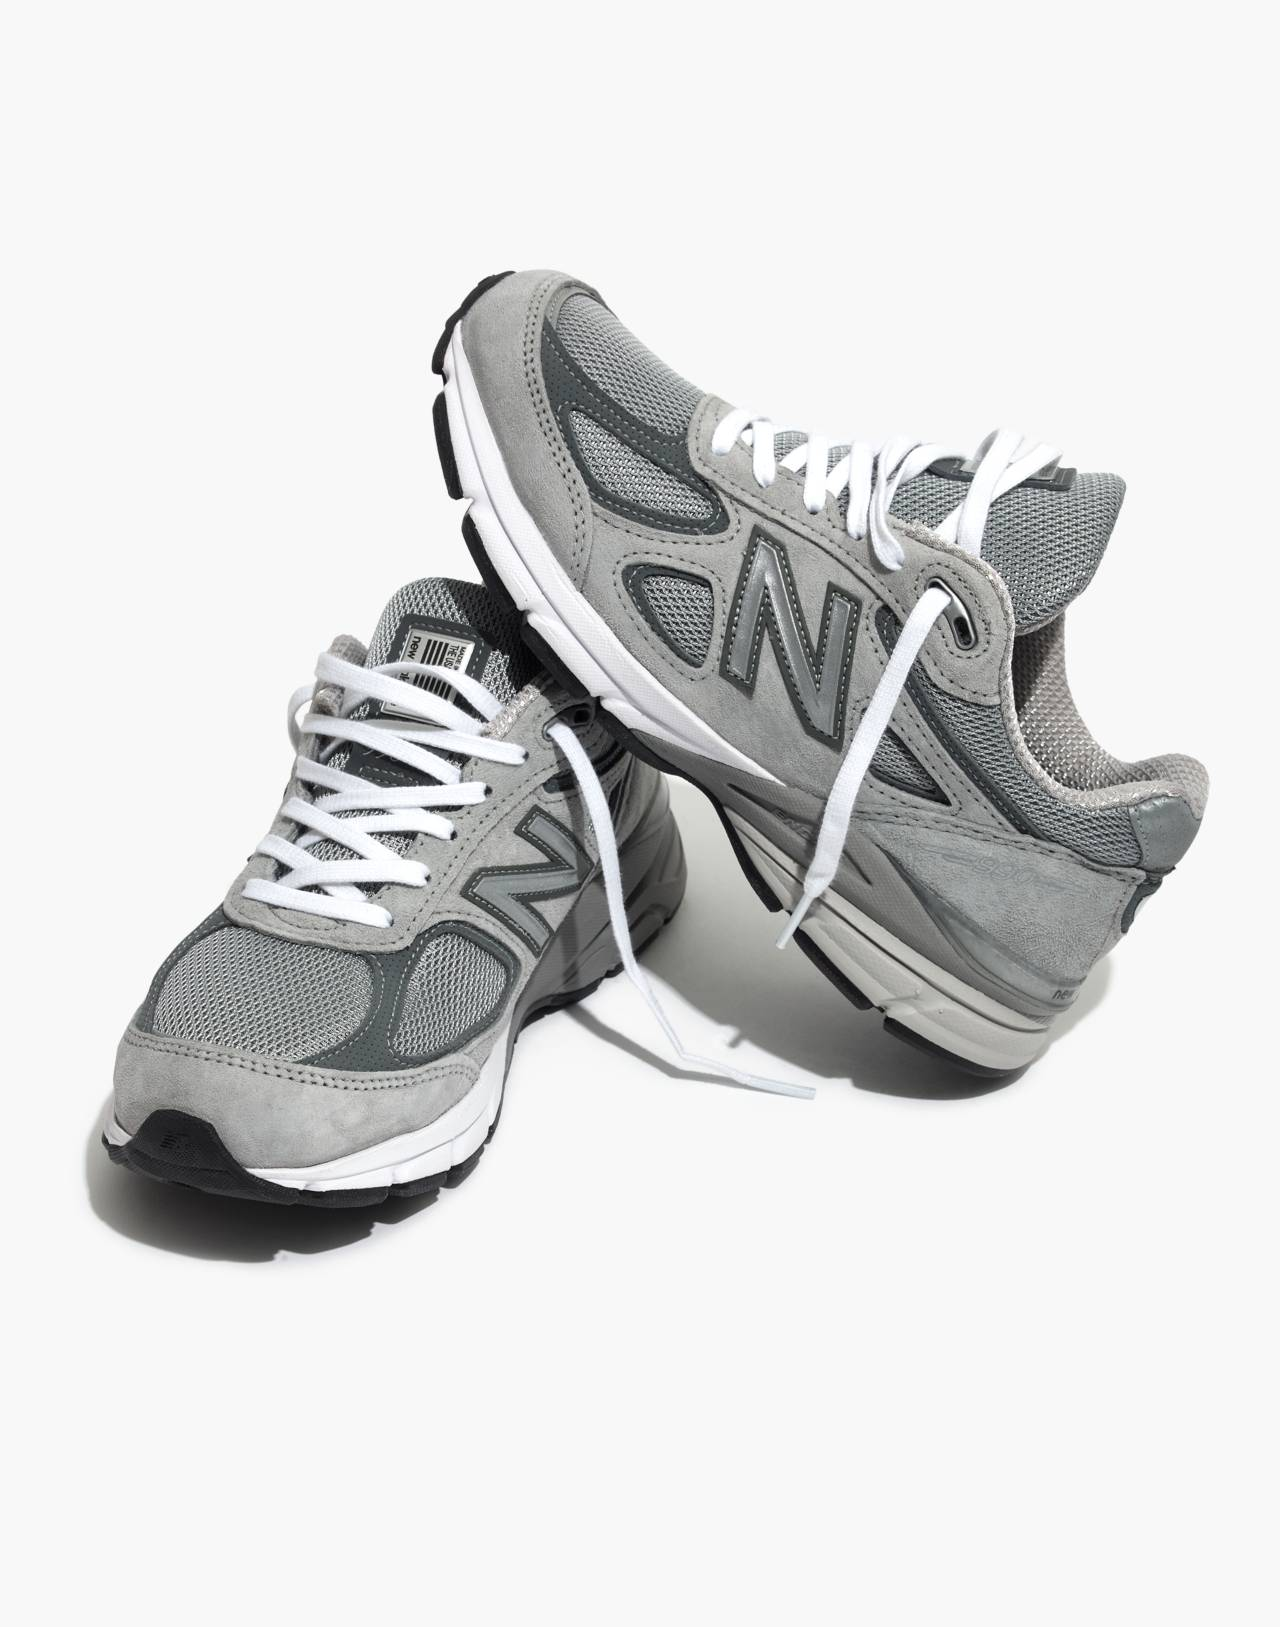 New Balance® 990v4 Sneakers in grey/castle rock image 1